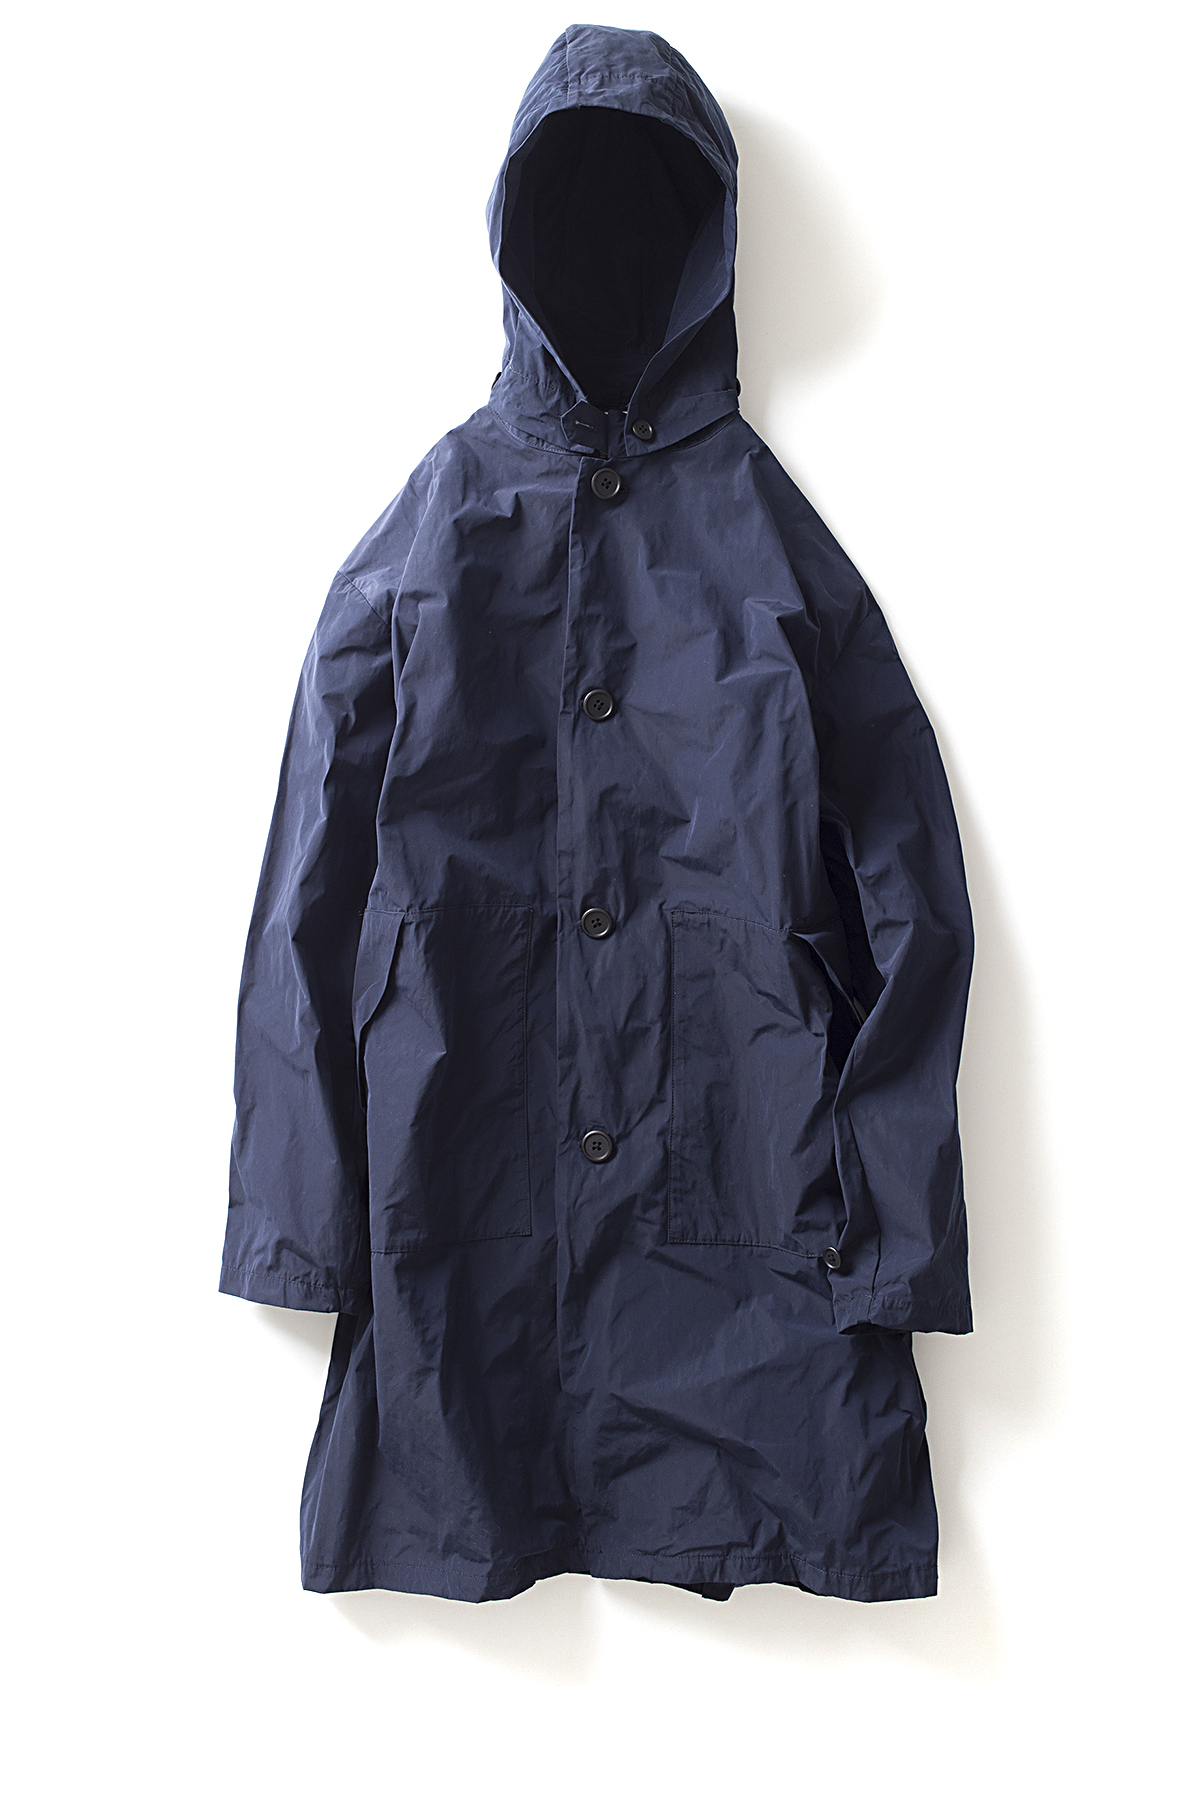 Still By Hand : Hooded Coat (Navy)